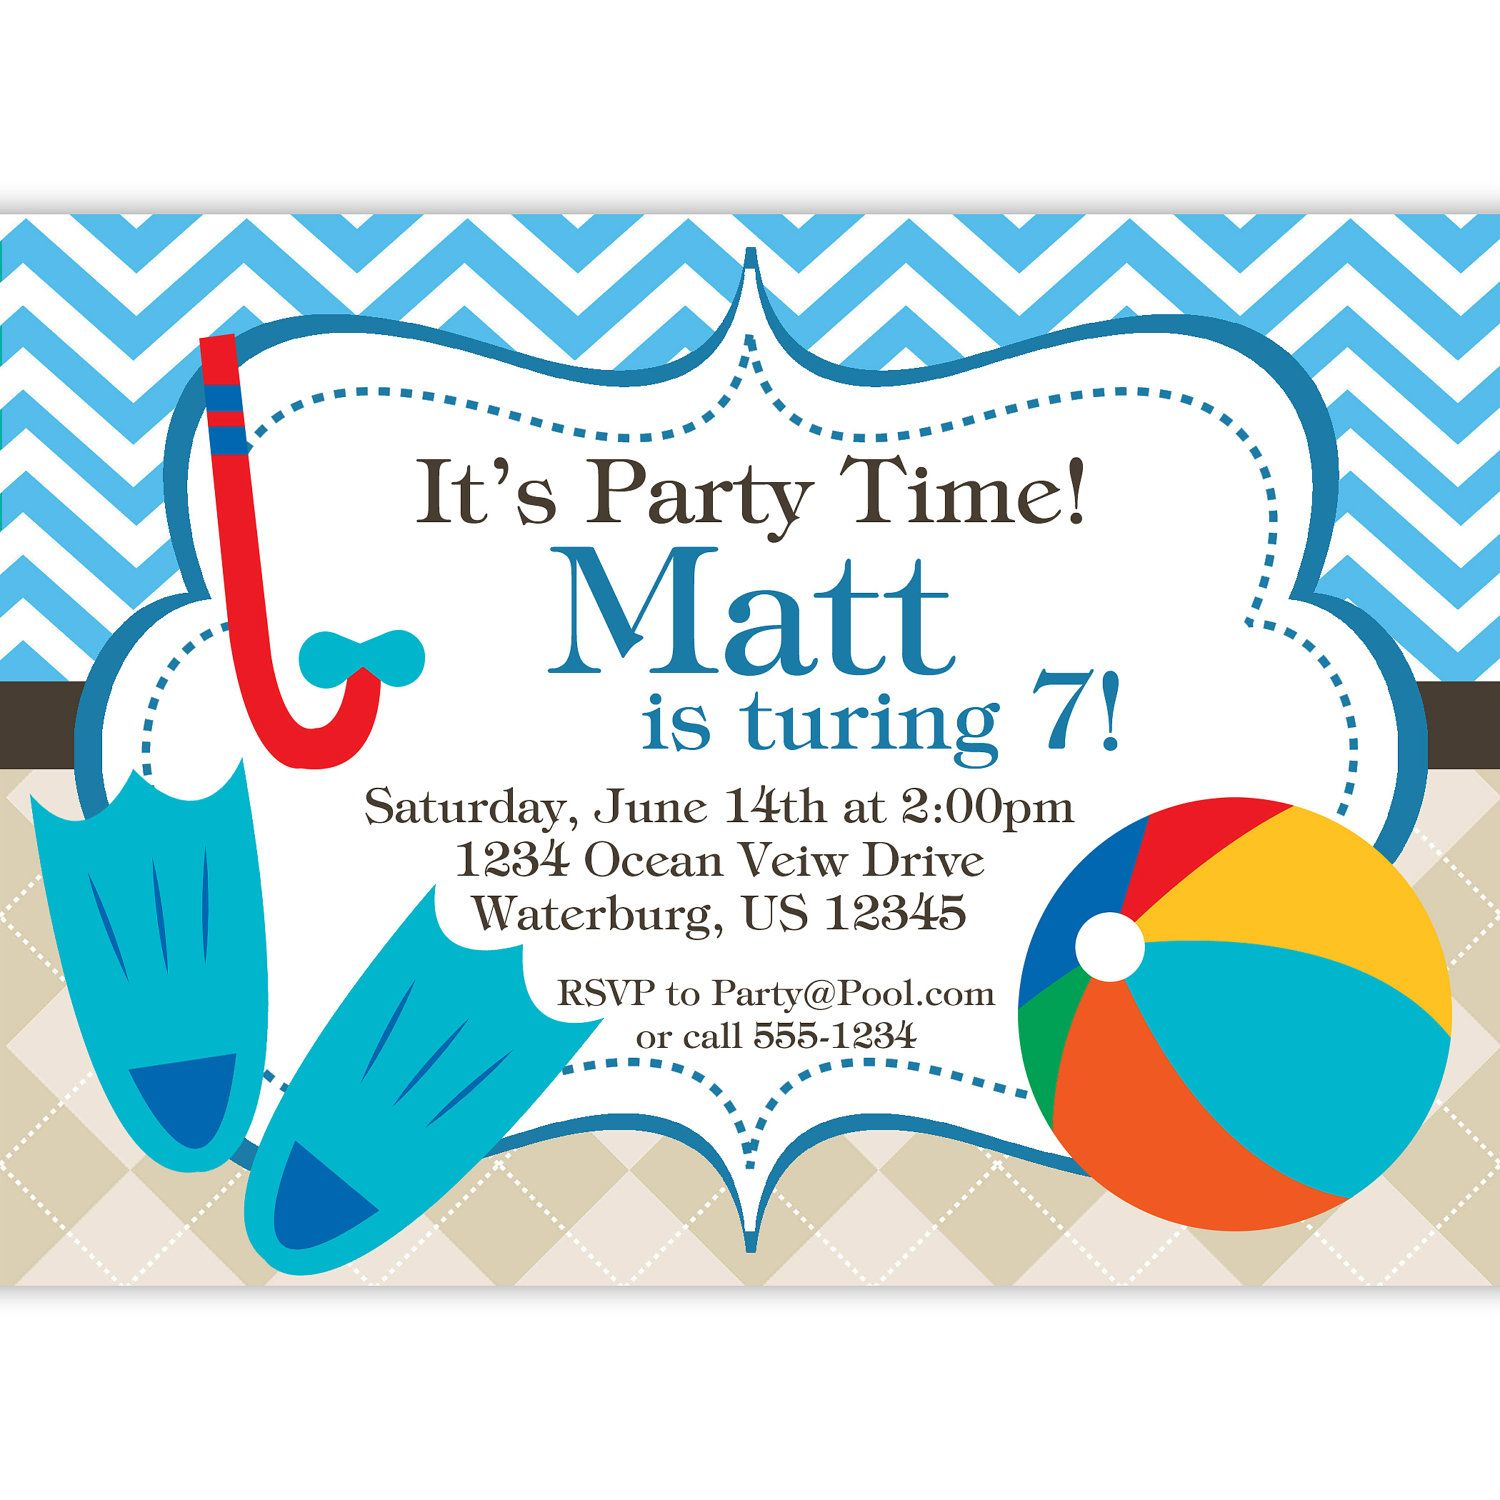 pool party invitation blue chevron and tan argyle beach ball and flippers personalized. Black Bedroom Furniture Sets. Home Design Ideas